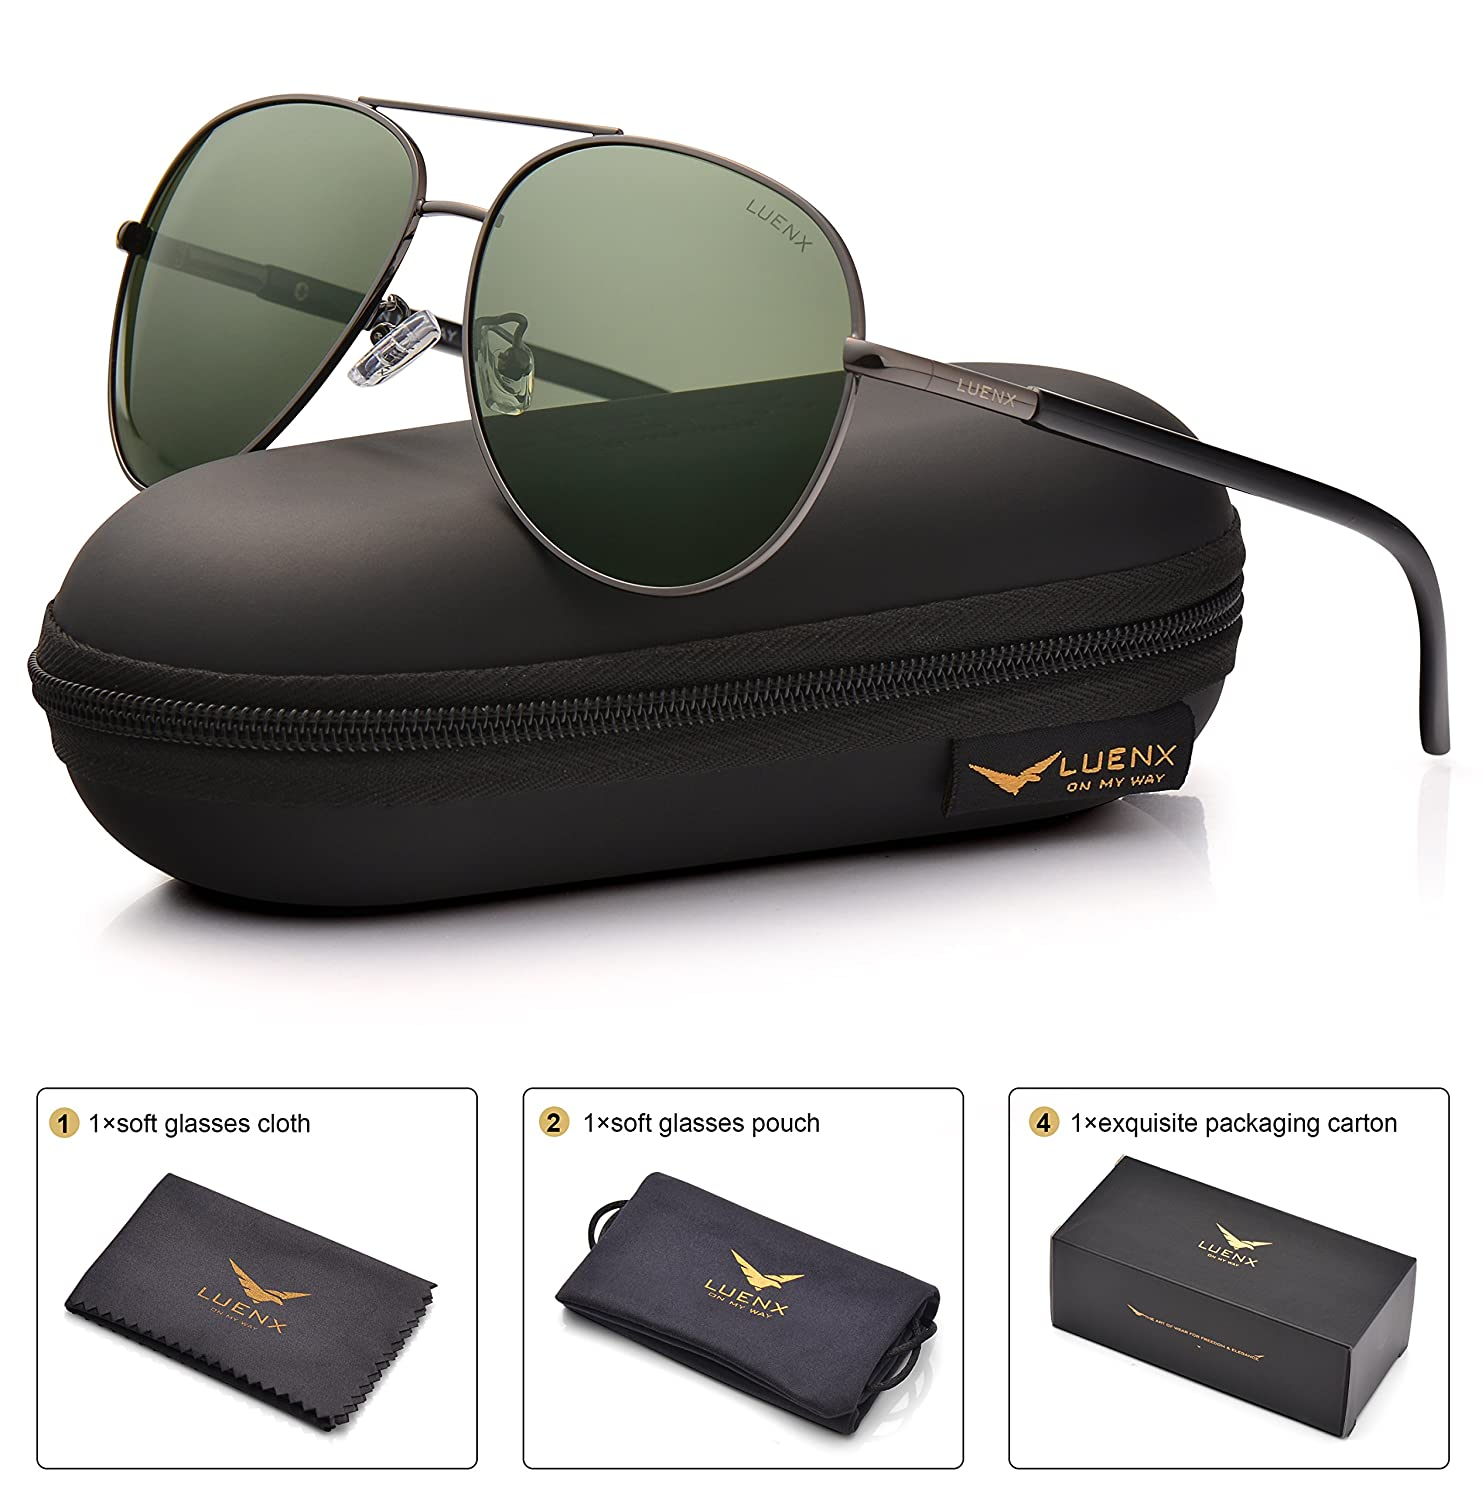 LUENX Mens Aviator Sunglasses Polarized : UV 400 Protection with Case 60MM 60) 1617-14